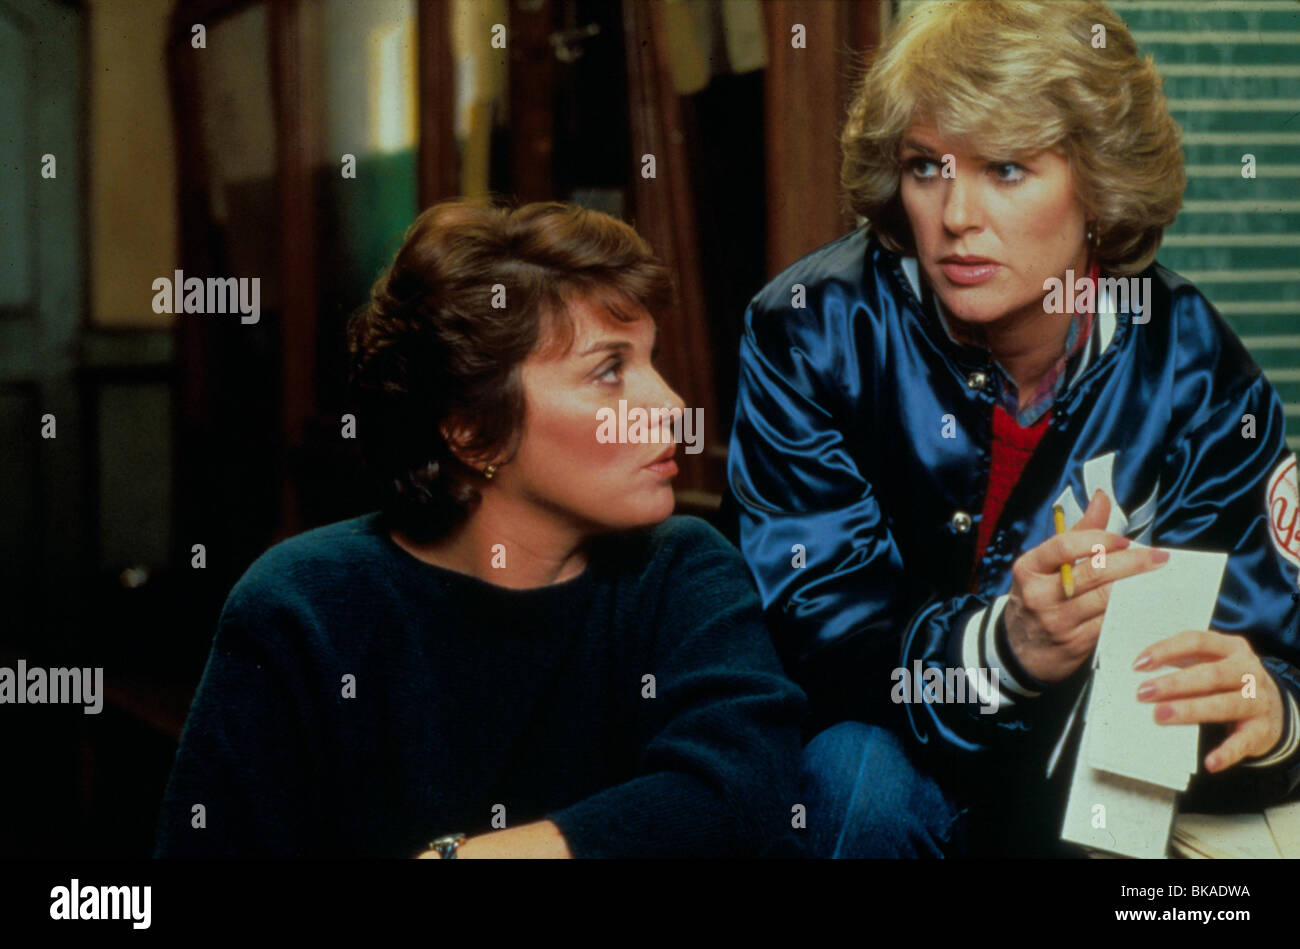 CAGNEY AND LACEY (TV) TYNE DALY, SHARON GLESS CGL 013 - Stock Image